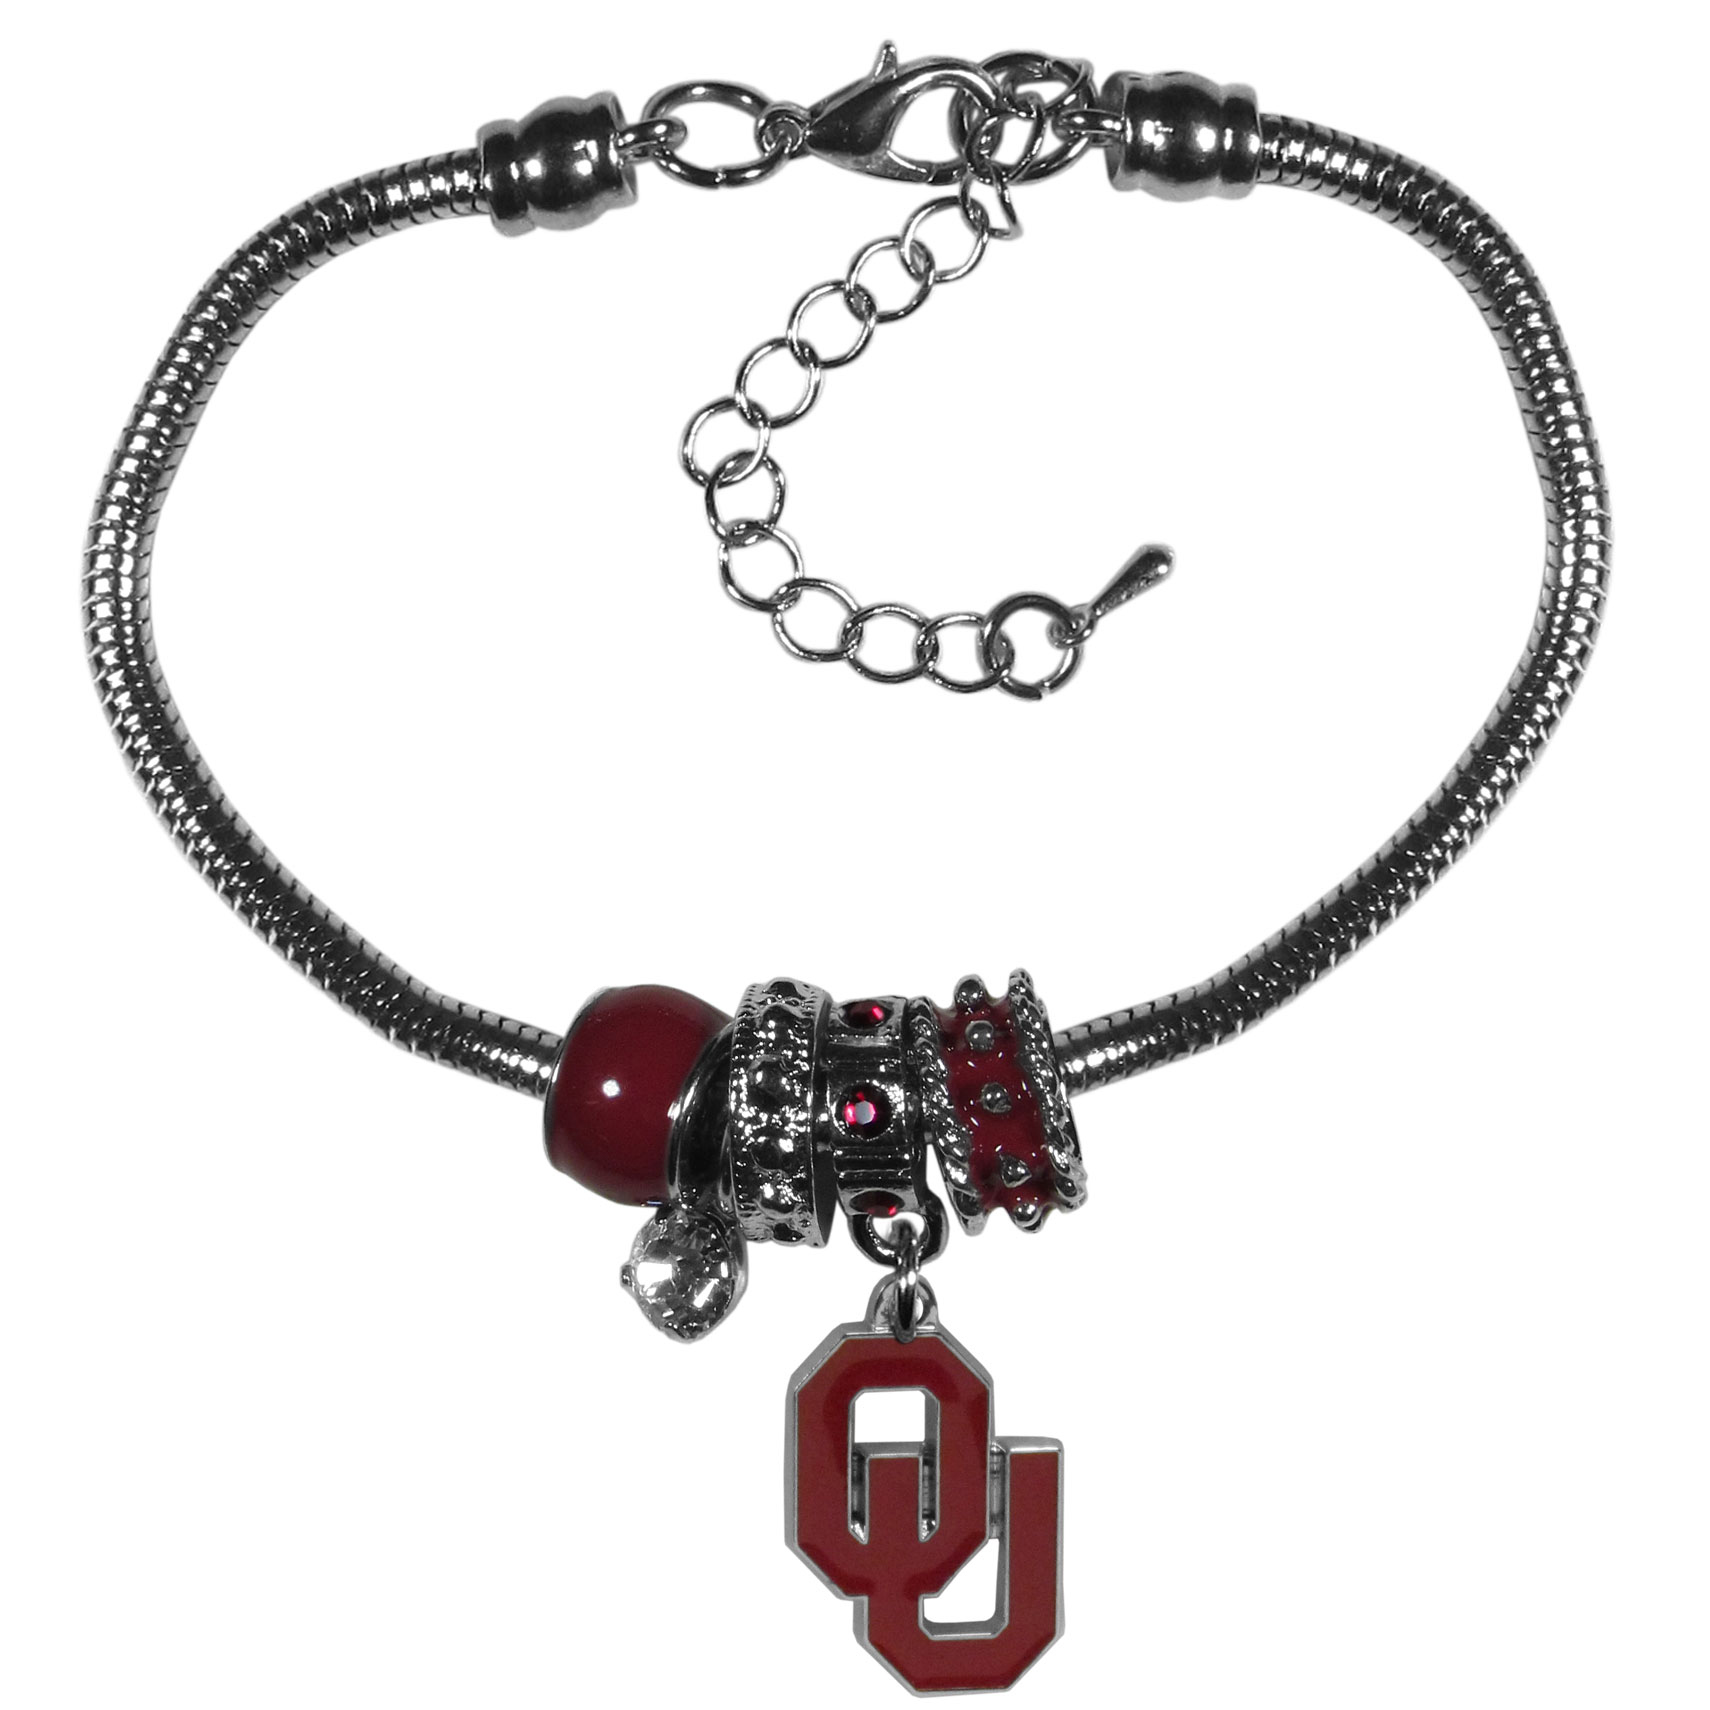 Oklahoma Sooners Euro Bead Bracelet - We have combined the wildly popular Euro style beads with your favorite team to create our  Oklahoma Sooners bead bracelet. The 7.5 inch snake chain with 2 inch extender features 4 Euro beads with enameled team colors and rhinestone accents with a high polish, nickel free charm and rhinestone charm. Perfect way to show off your team pride.